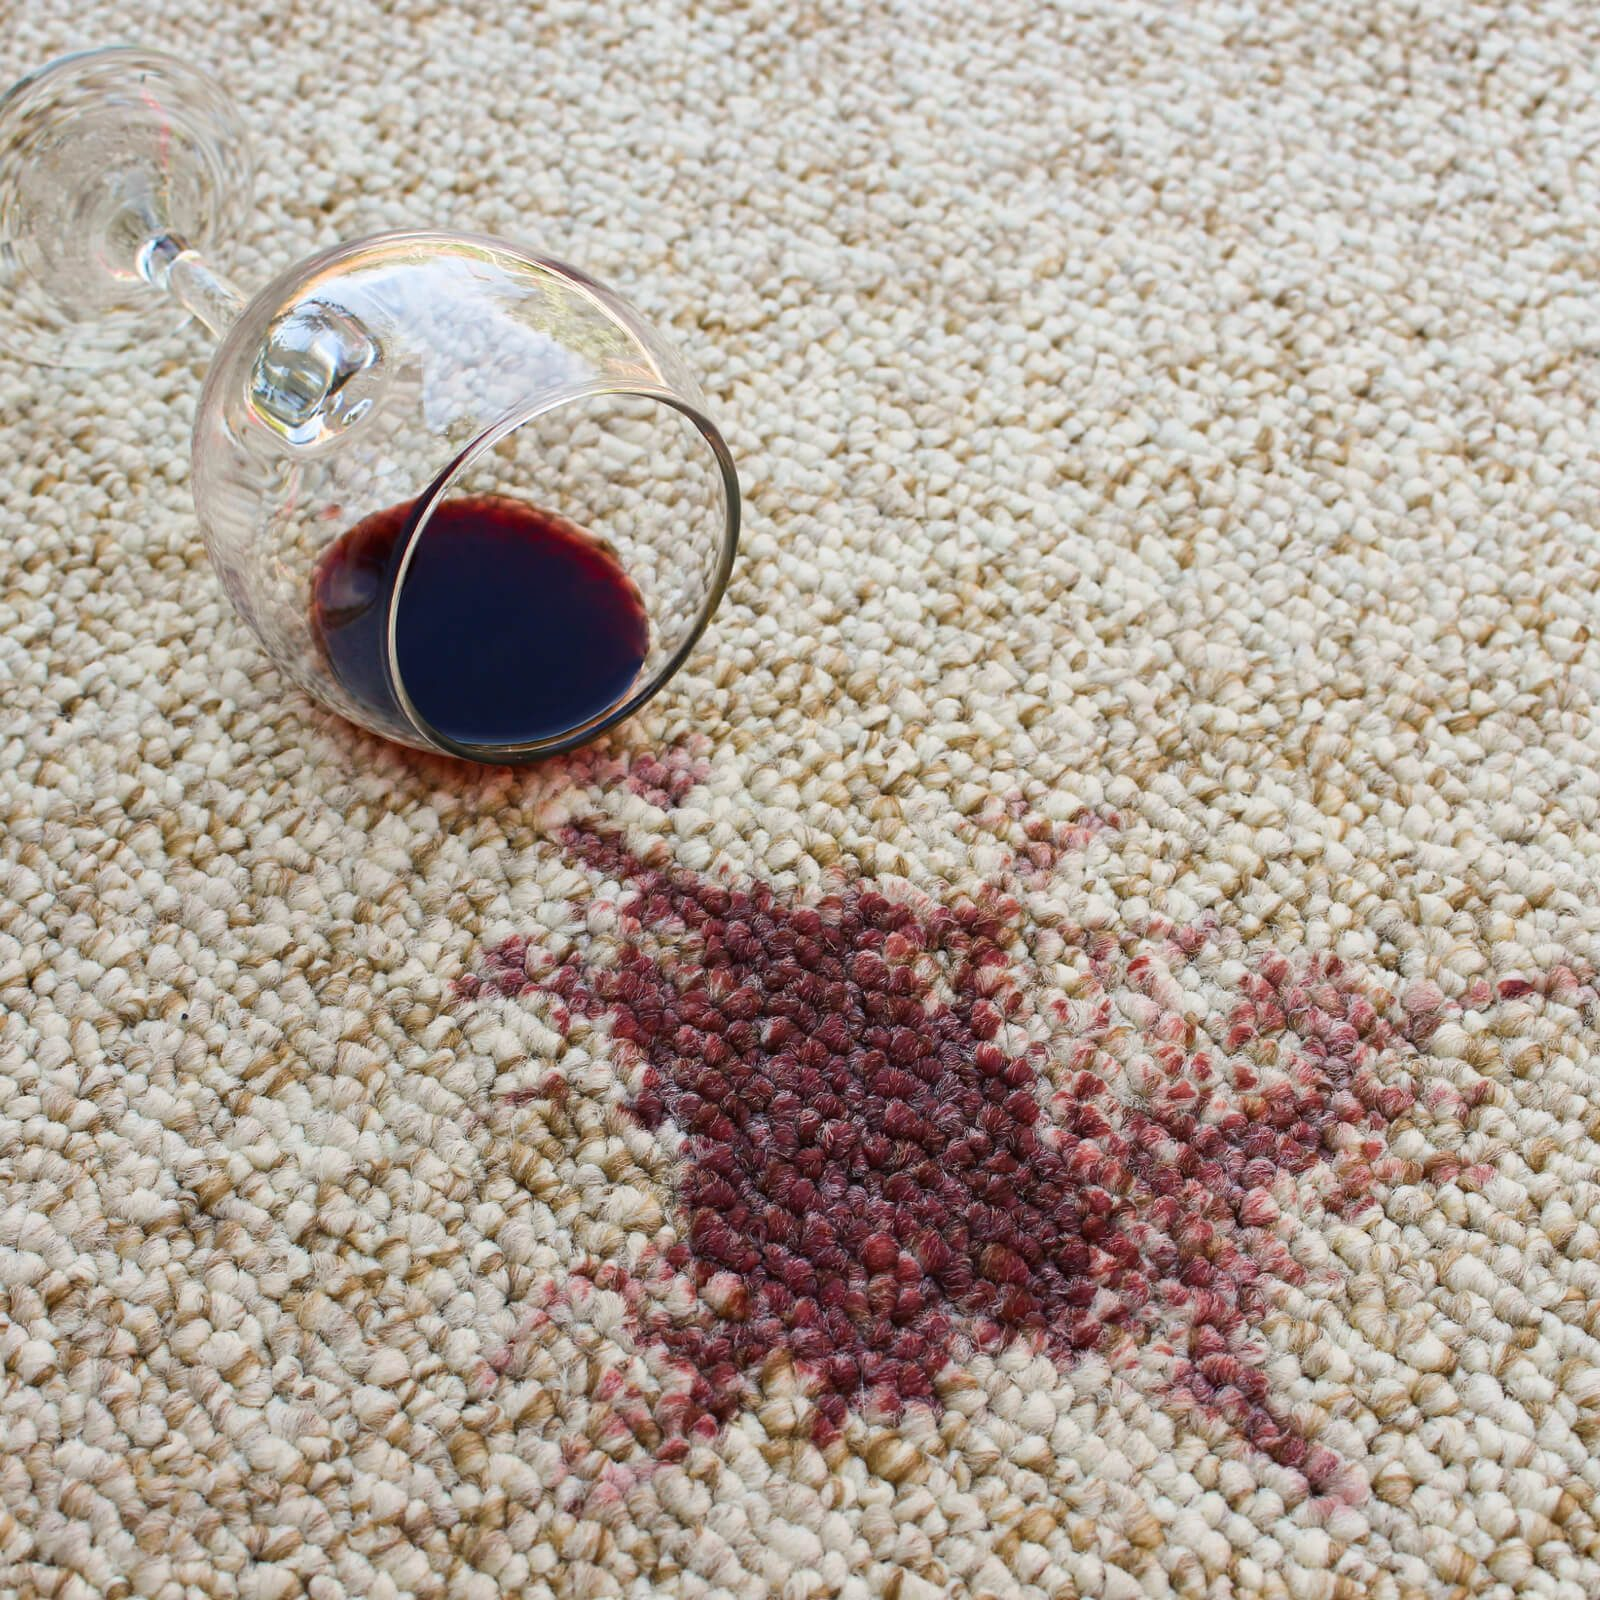 Red wine spill on carpet | Westport Flooring